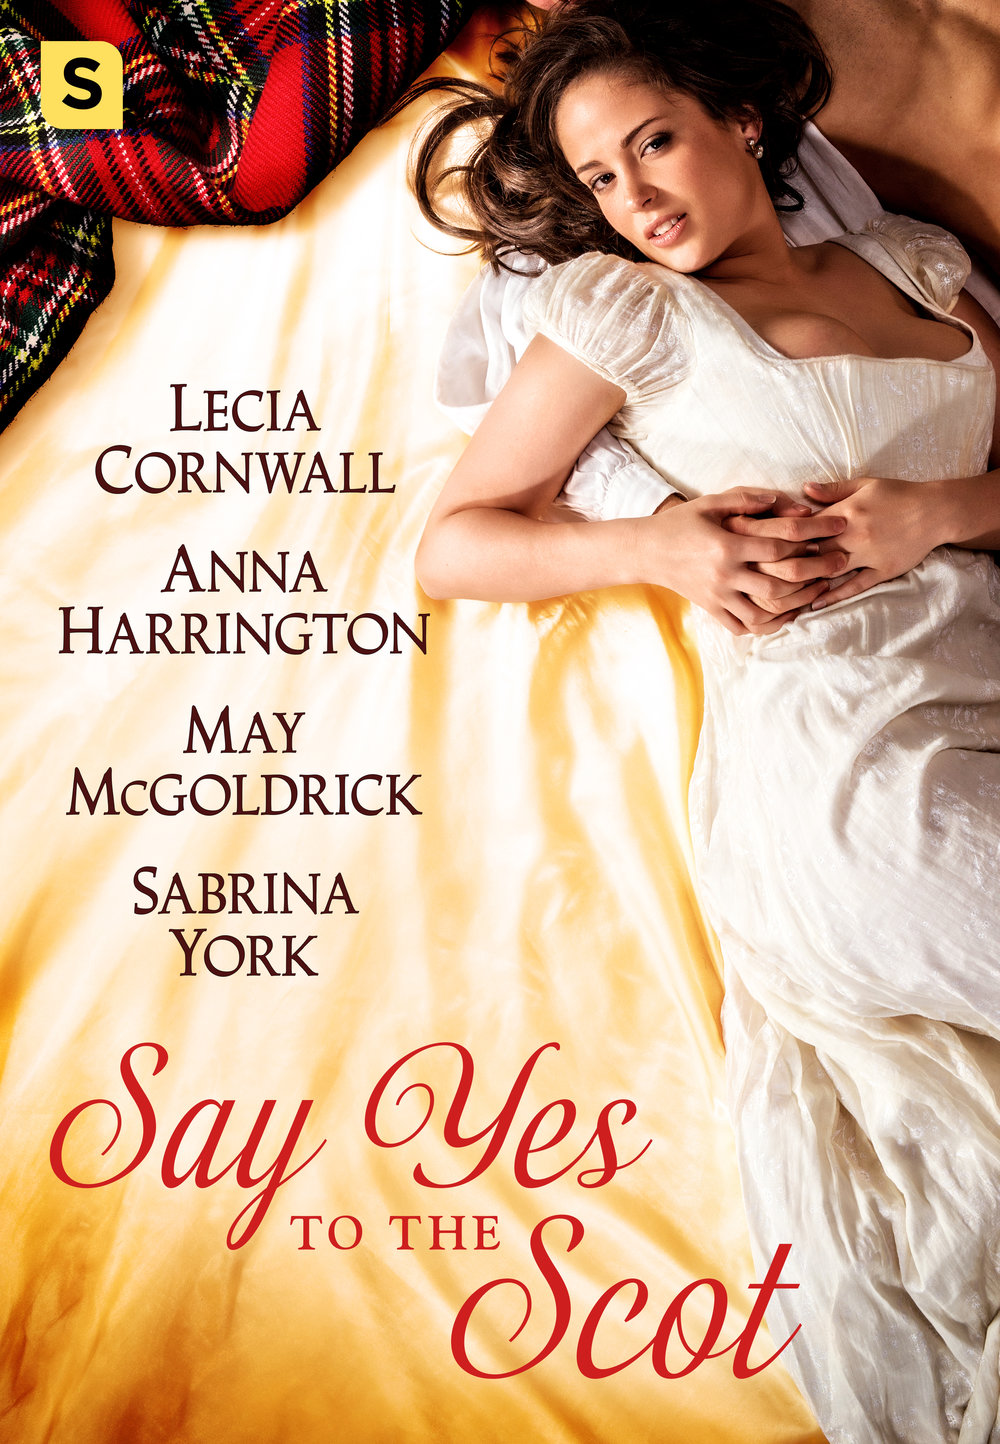 Say Yes To The Scot.jpg